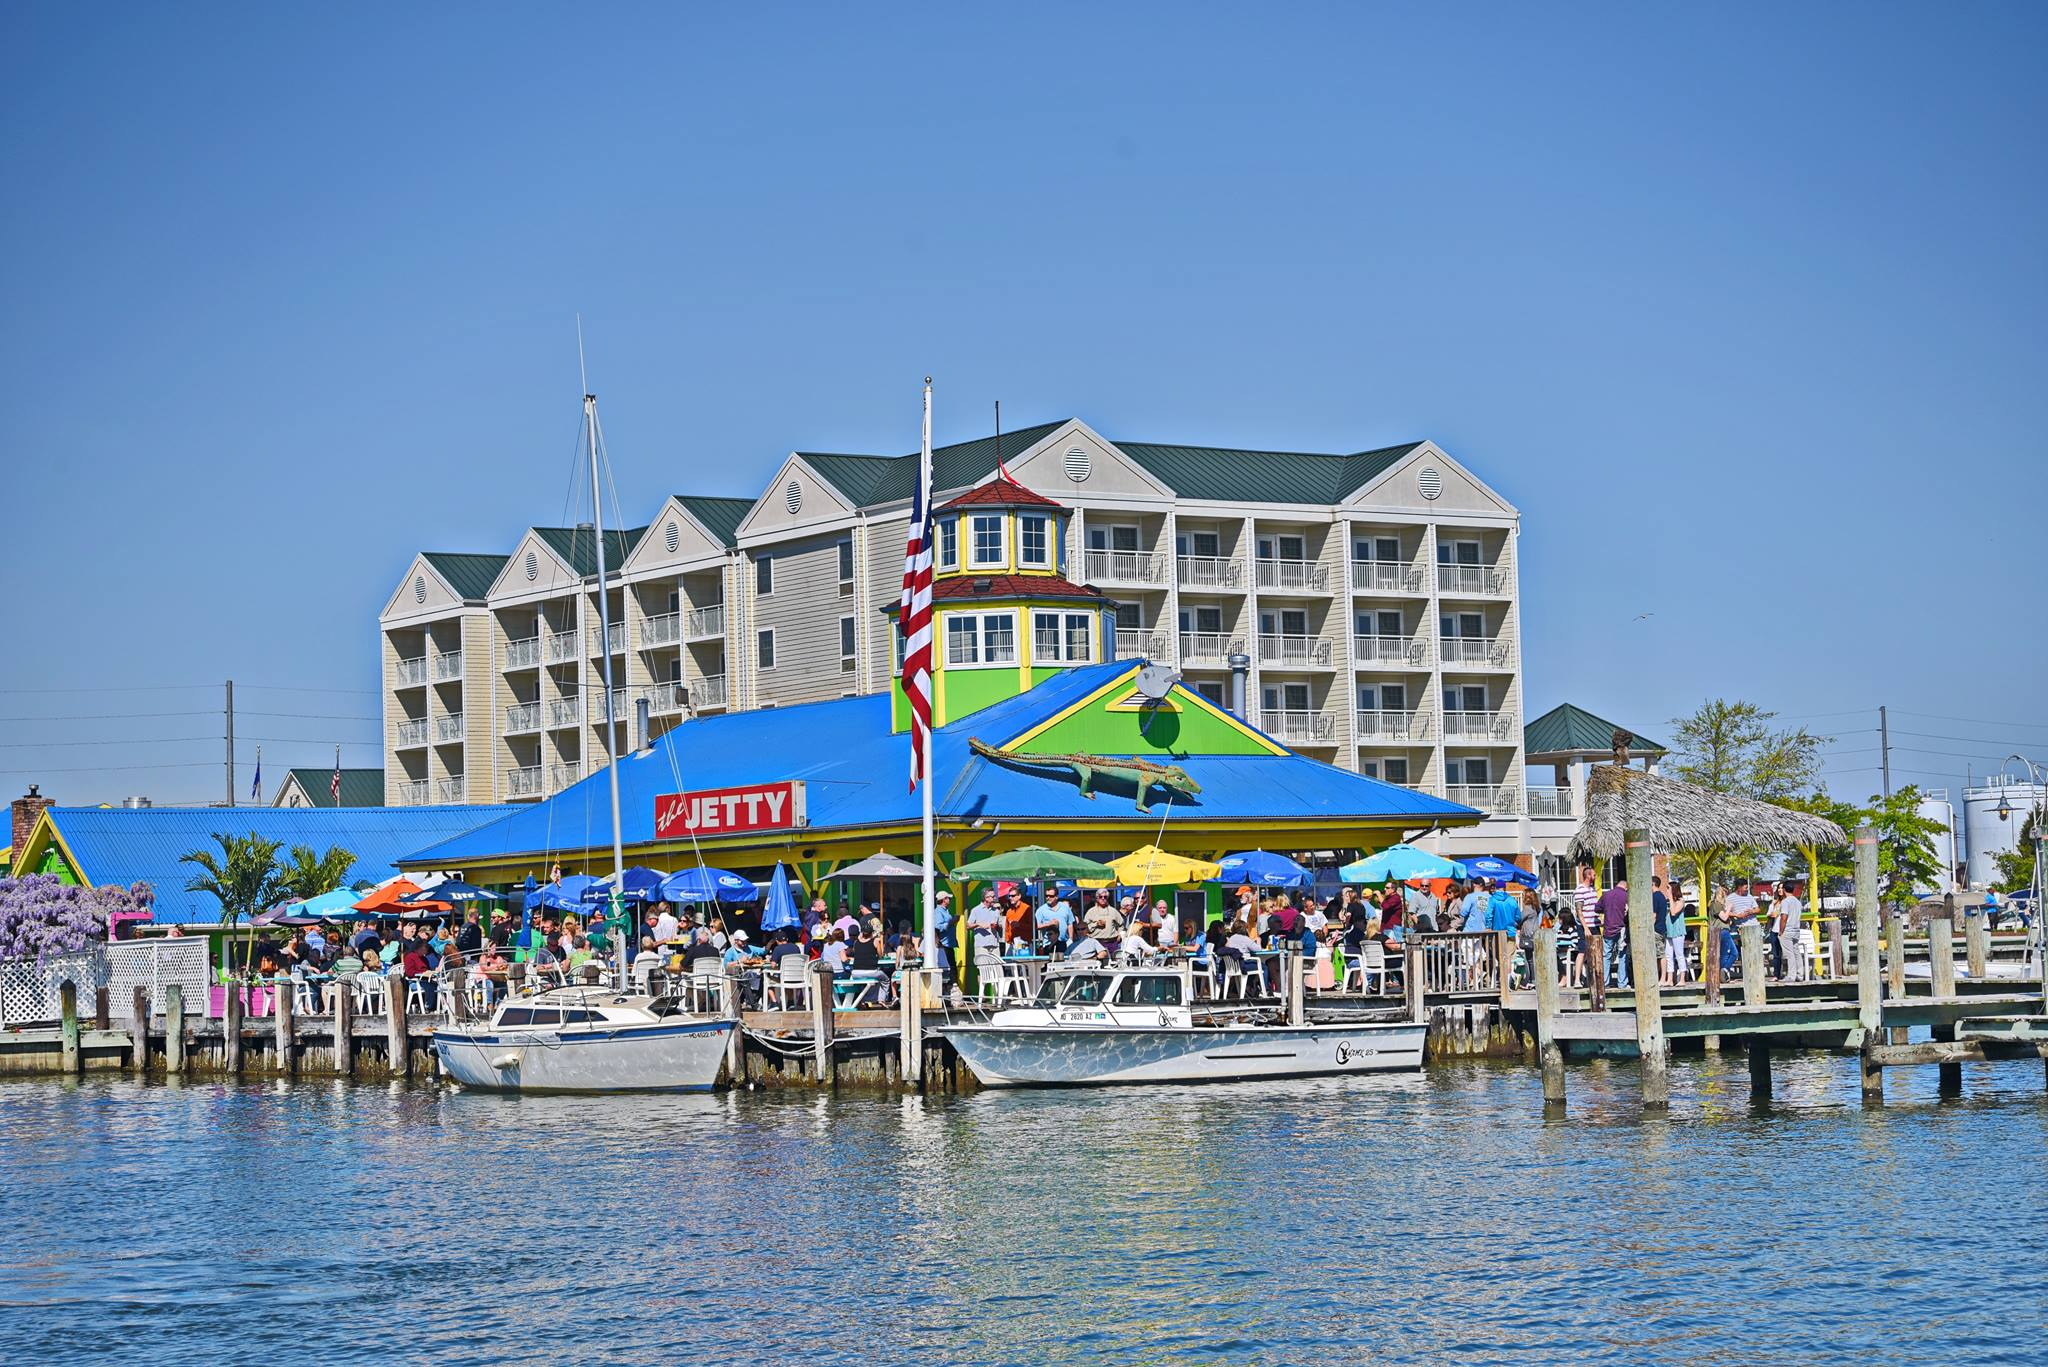 The Jetty: Restaurant and Dock Bar exterior view